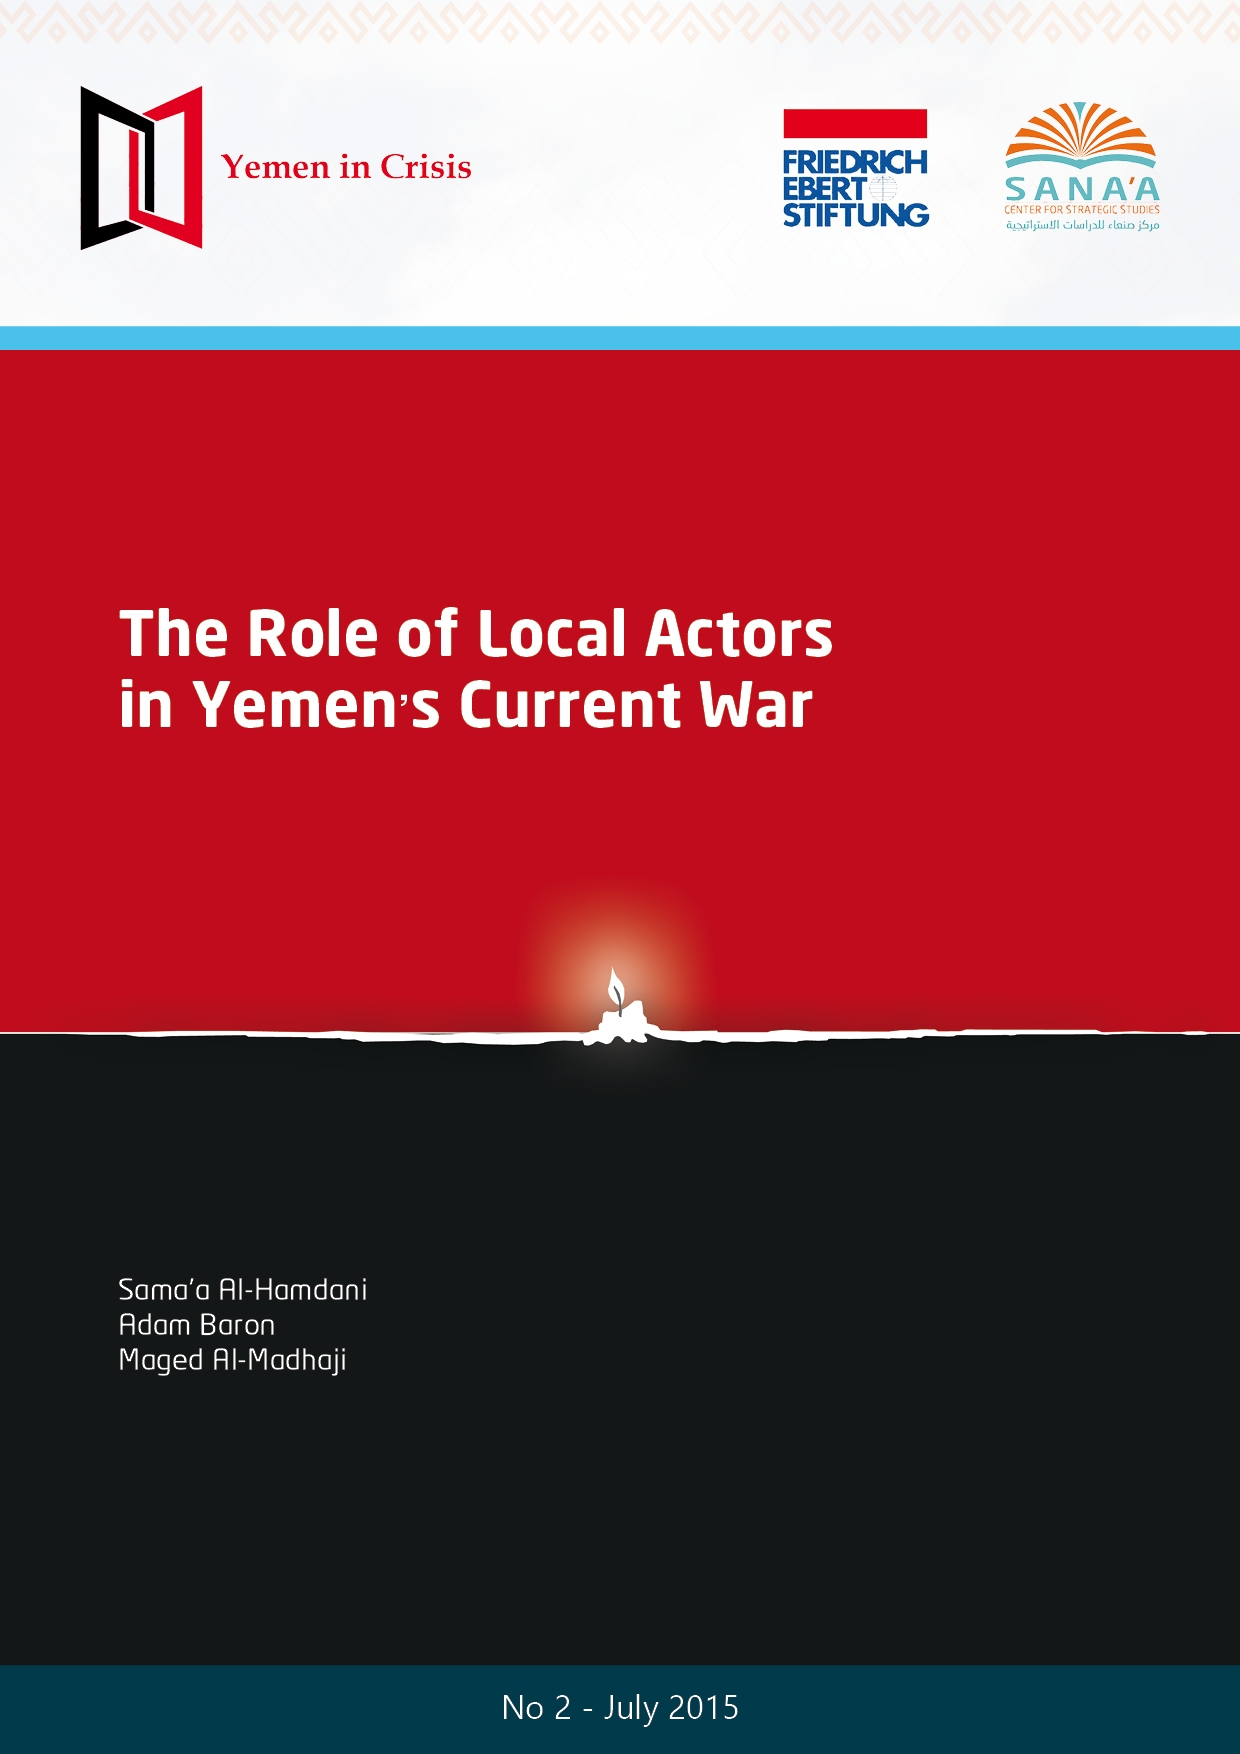 The Role of Local Actors in Yemen's Current War